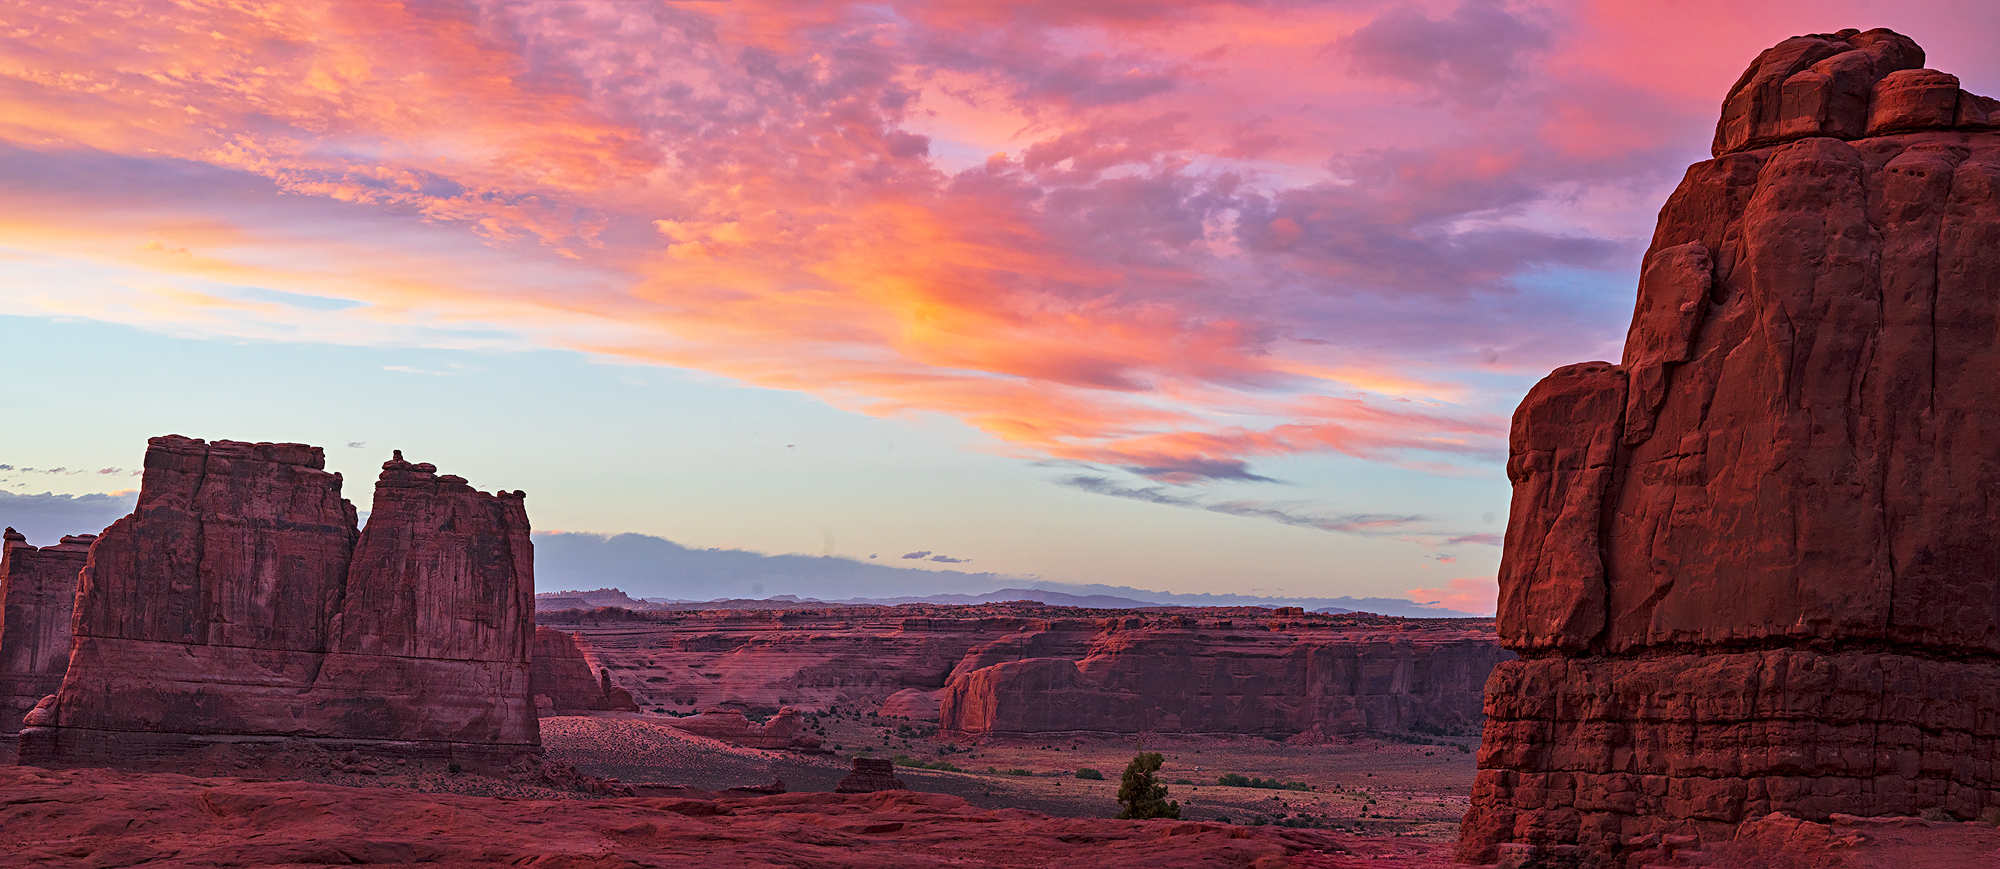 Sublime sunset from the Le Sal Overlook in Arches National Park.